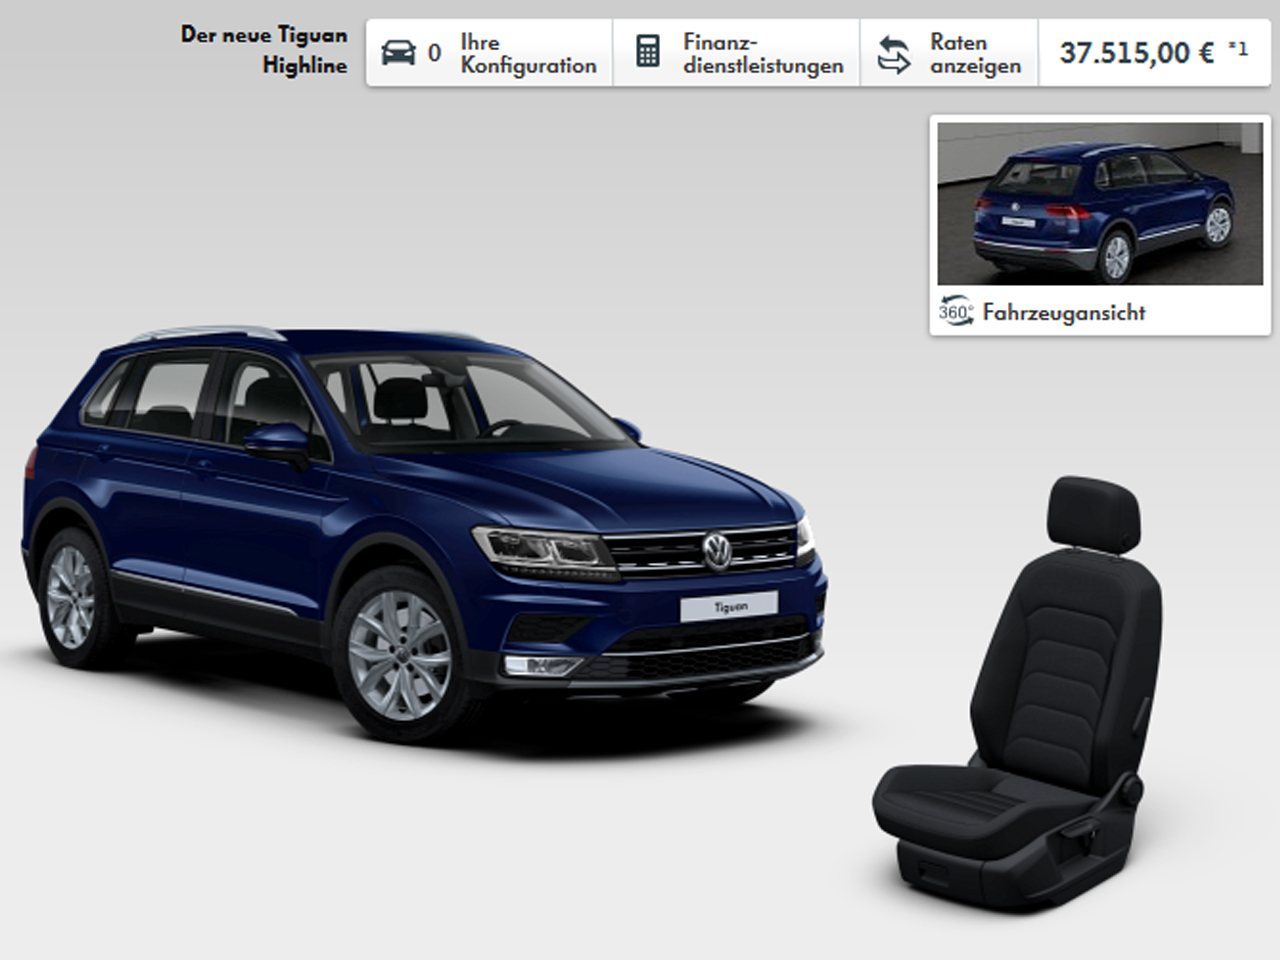 volkswagen tiguan 2016 fiches techniques configurateur et prix photo 3 l 39 argus. Black Bedroom Furniture Sets. Home Design Ideas